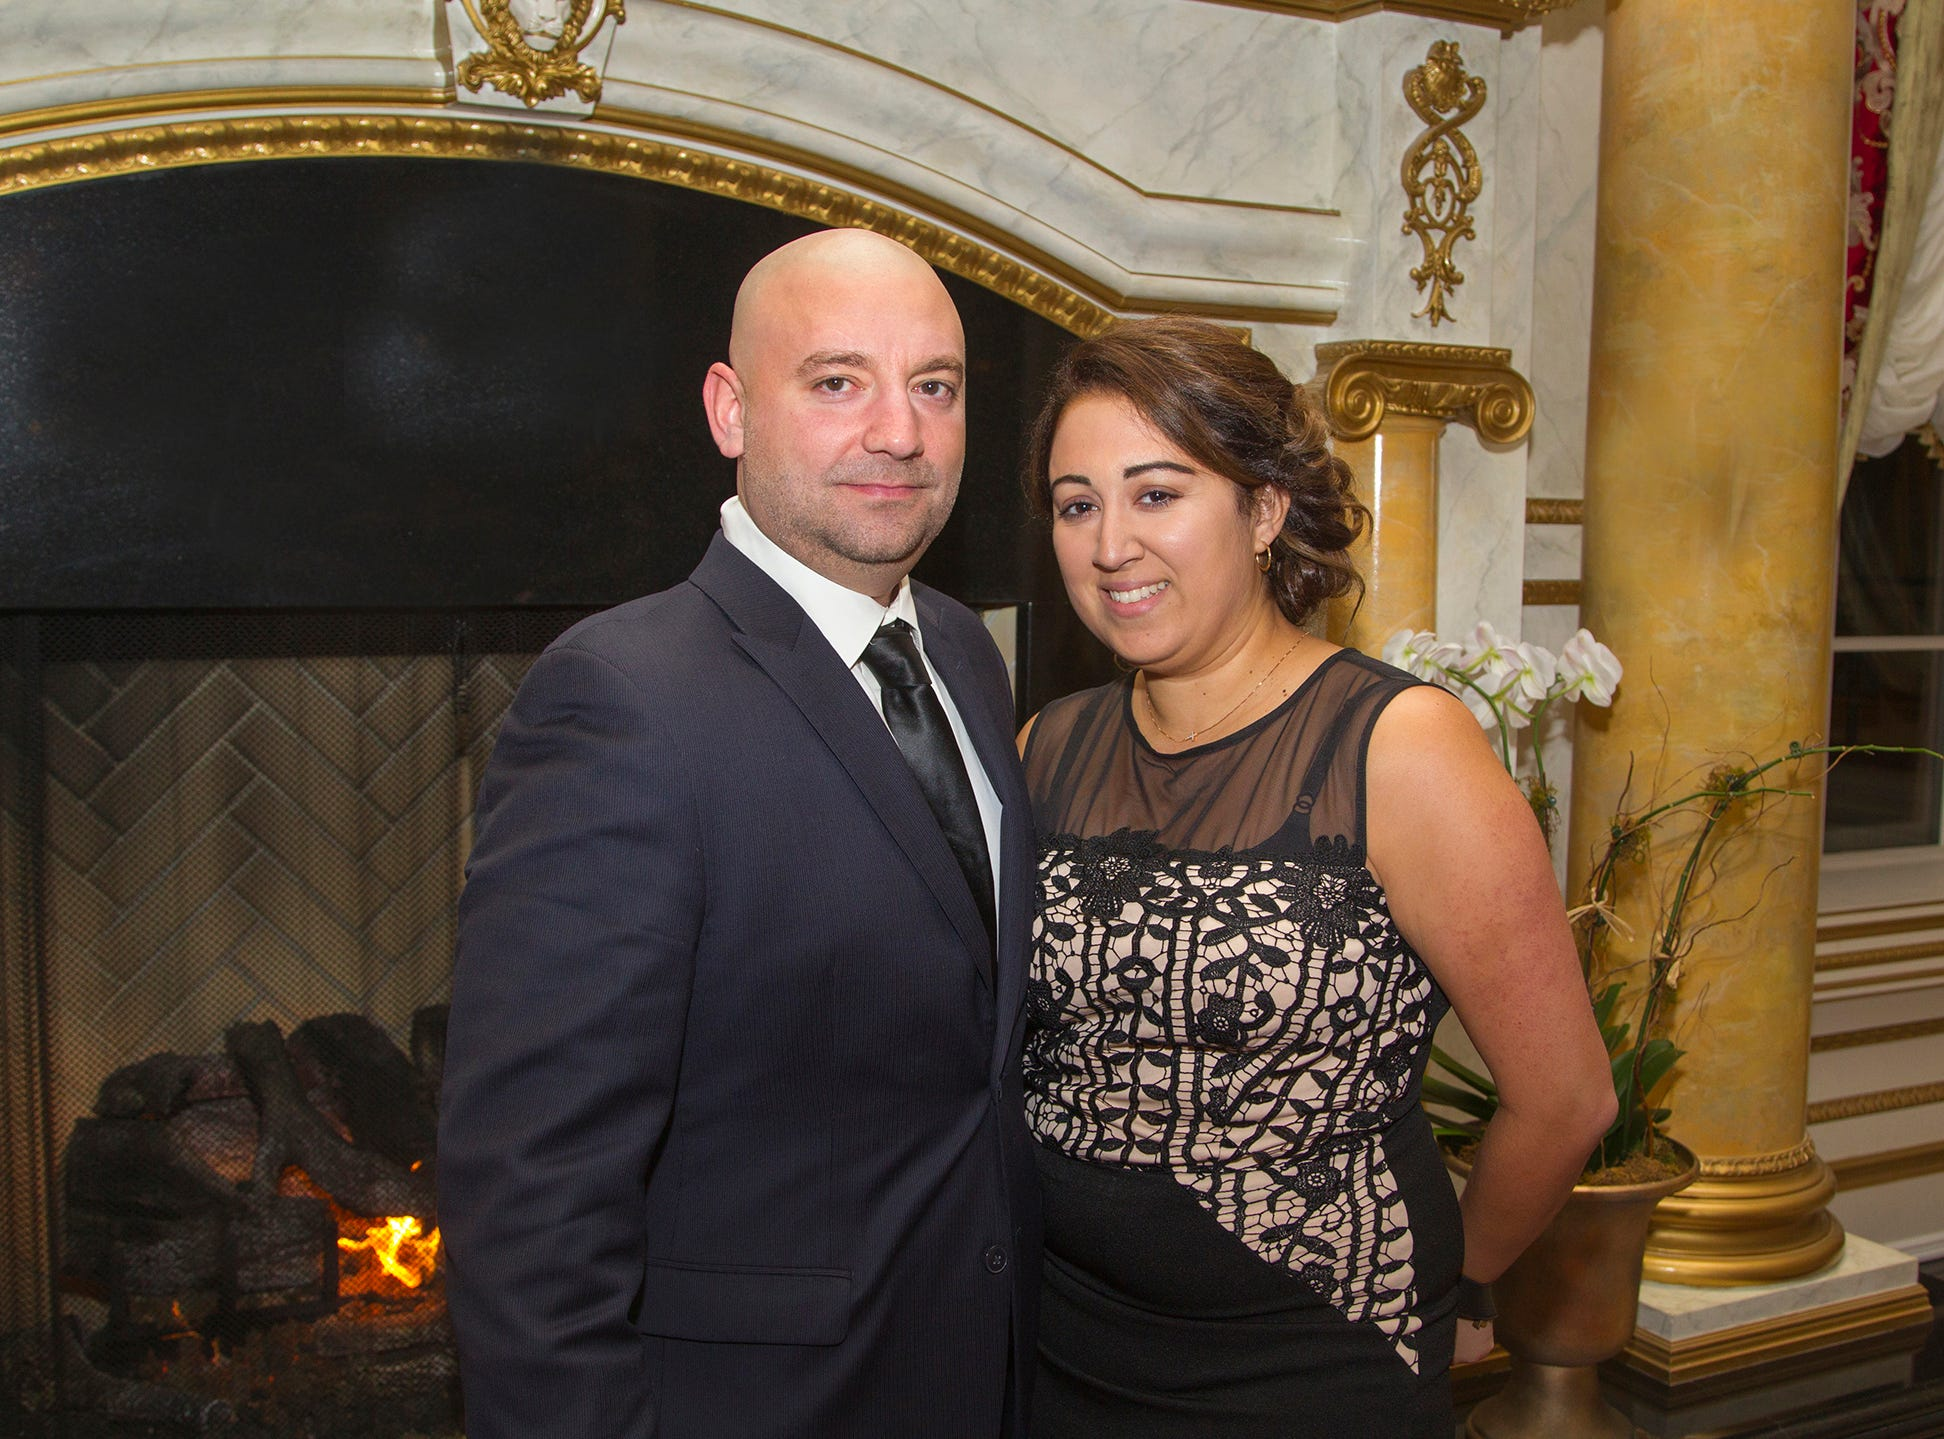 Nick Pansuni, Anna Giancaspro.  The 72nd Annual Valley Ball gala at The Legacy Castle in Pompton Plains. 11/16/2018